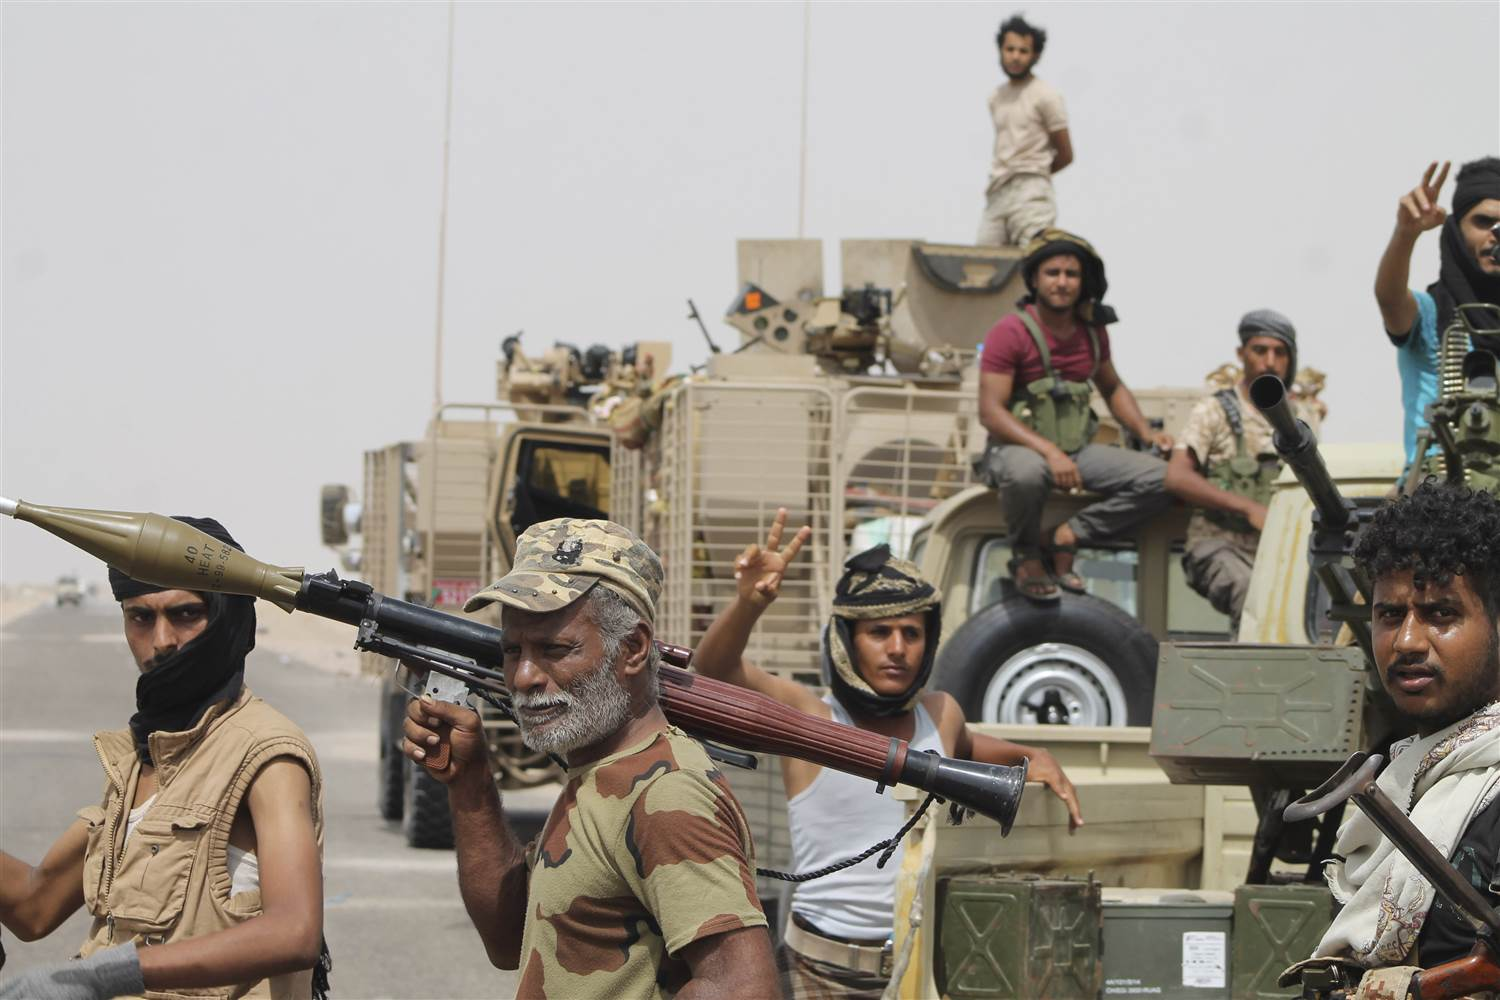 About 100 Pro-Saudi Fighters Killed In Yemen - Reports